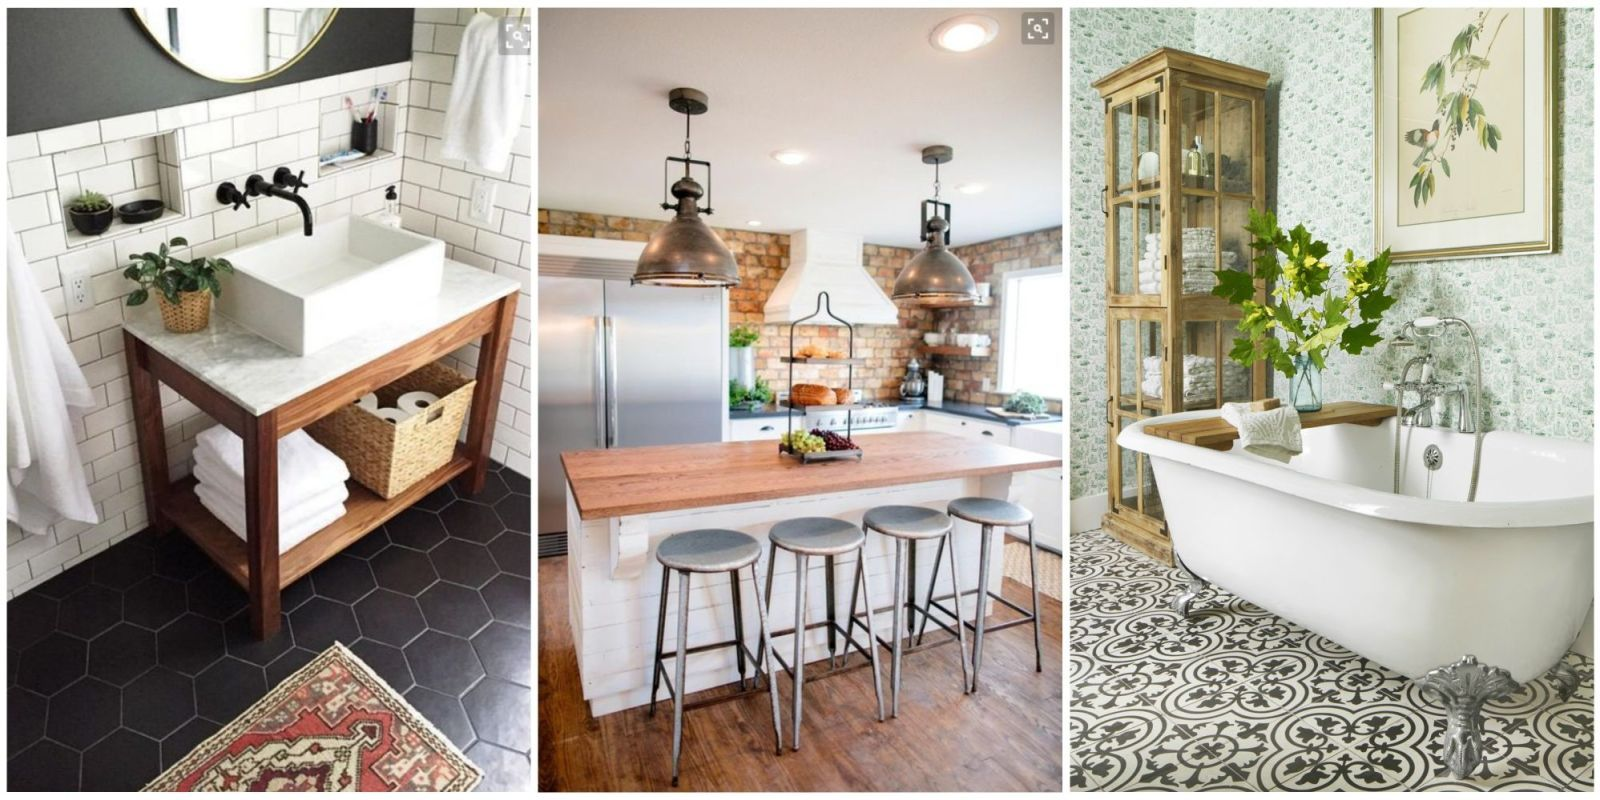 If Youu0027re Looking To Sell Or Remodel Your Home In 2017, Listen Up: The Real  Estate Agents At Redfin Have Rounded Up Seven Design Features And Materials  That ...